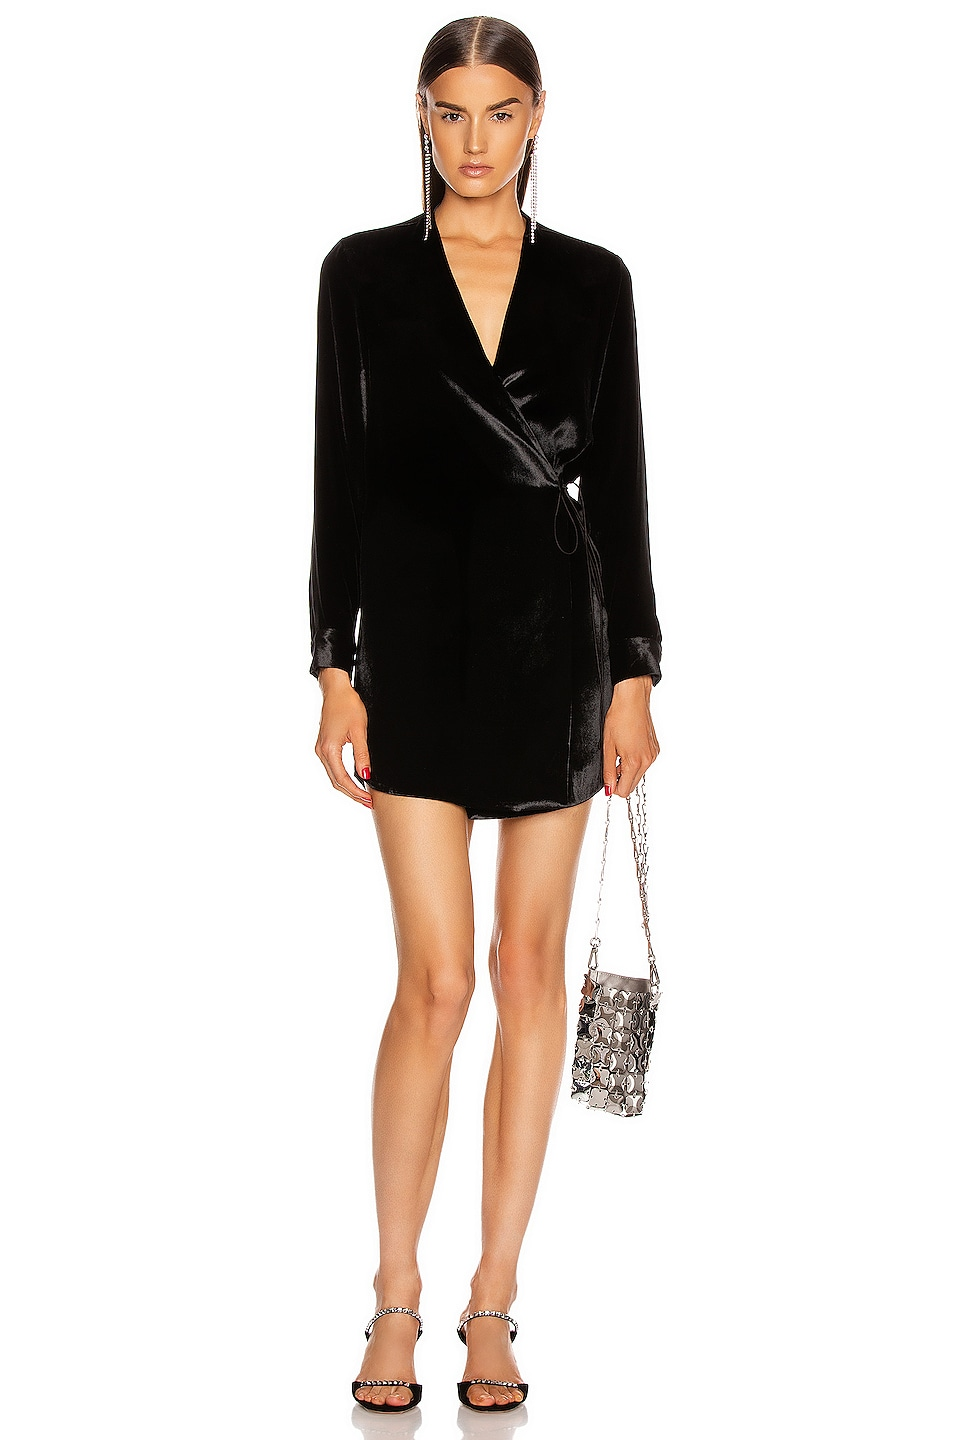 Image 1 of Michelle Mason for FWRD Dress Jacket in Black Solid